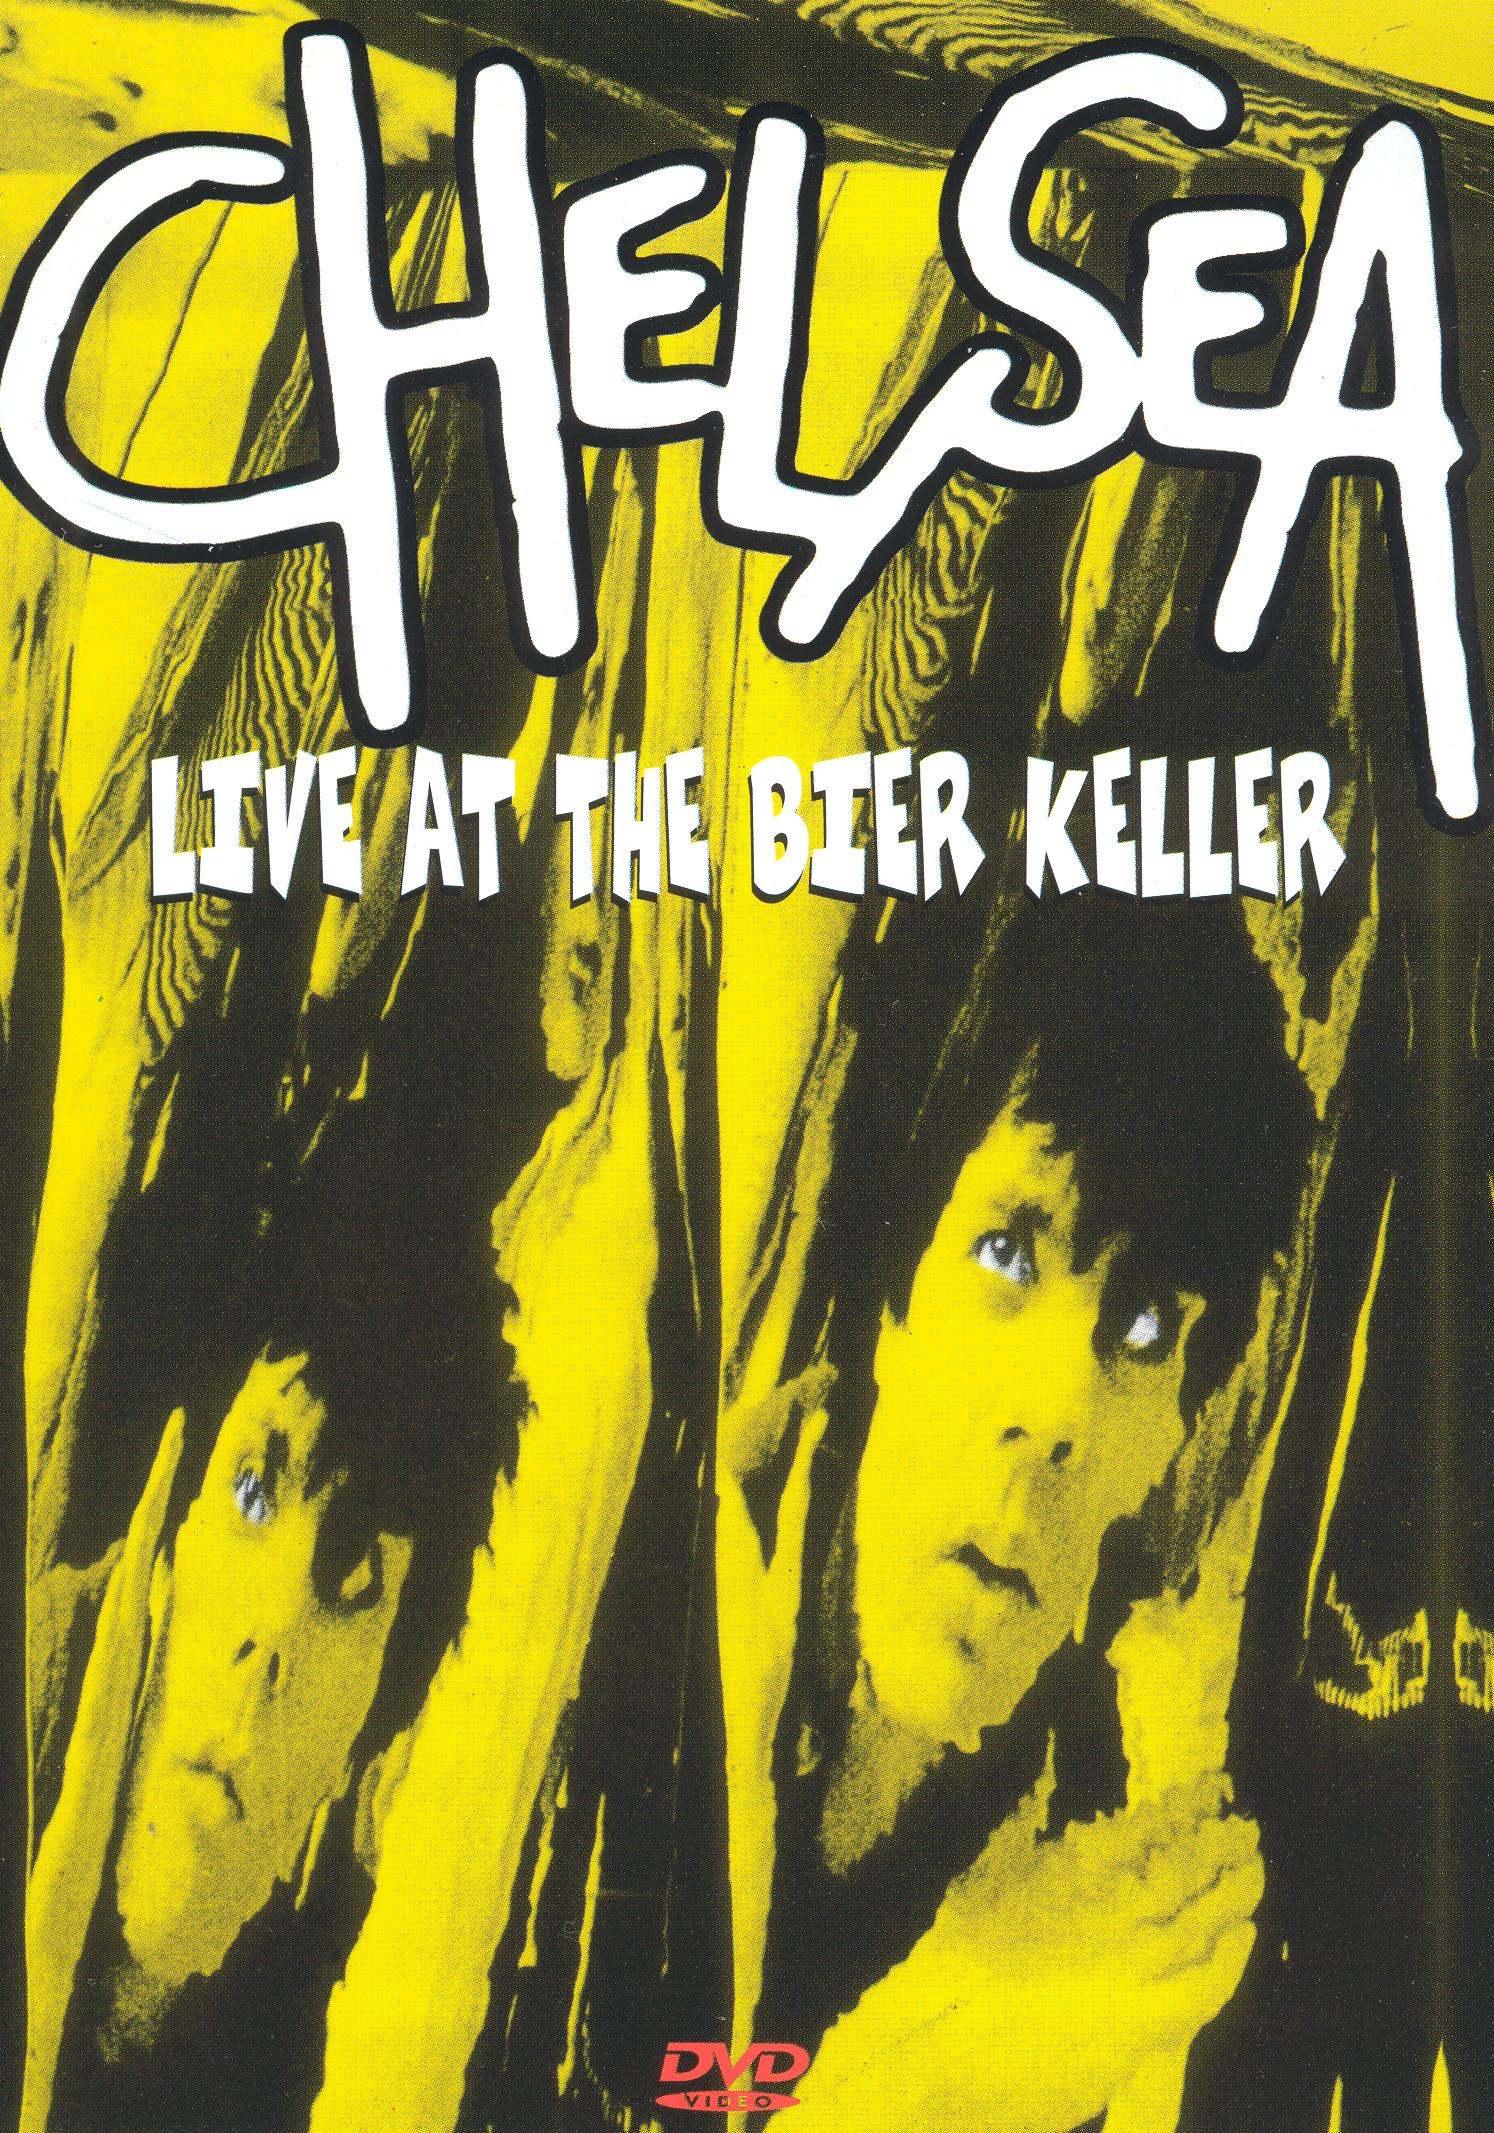 Chelsea: Live at the Bier Keller